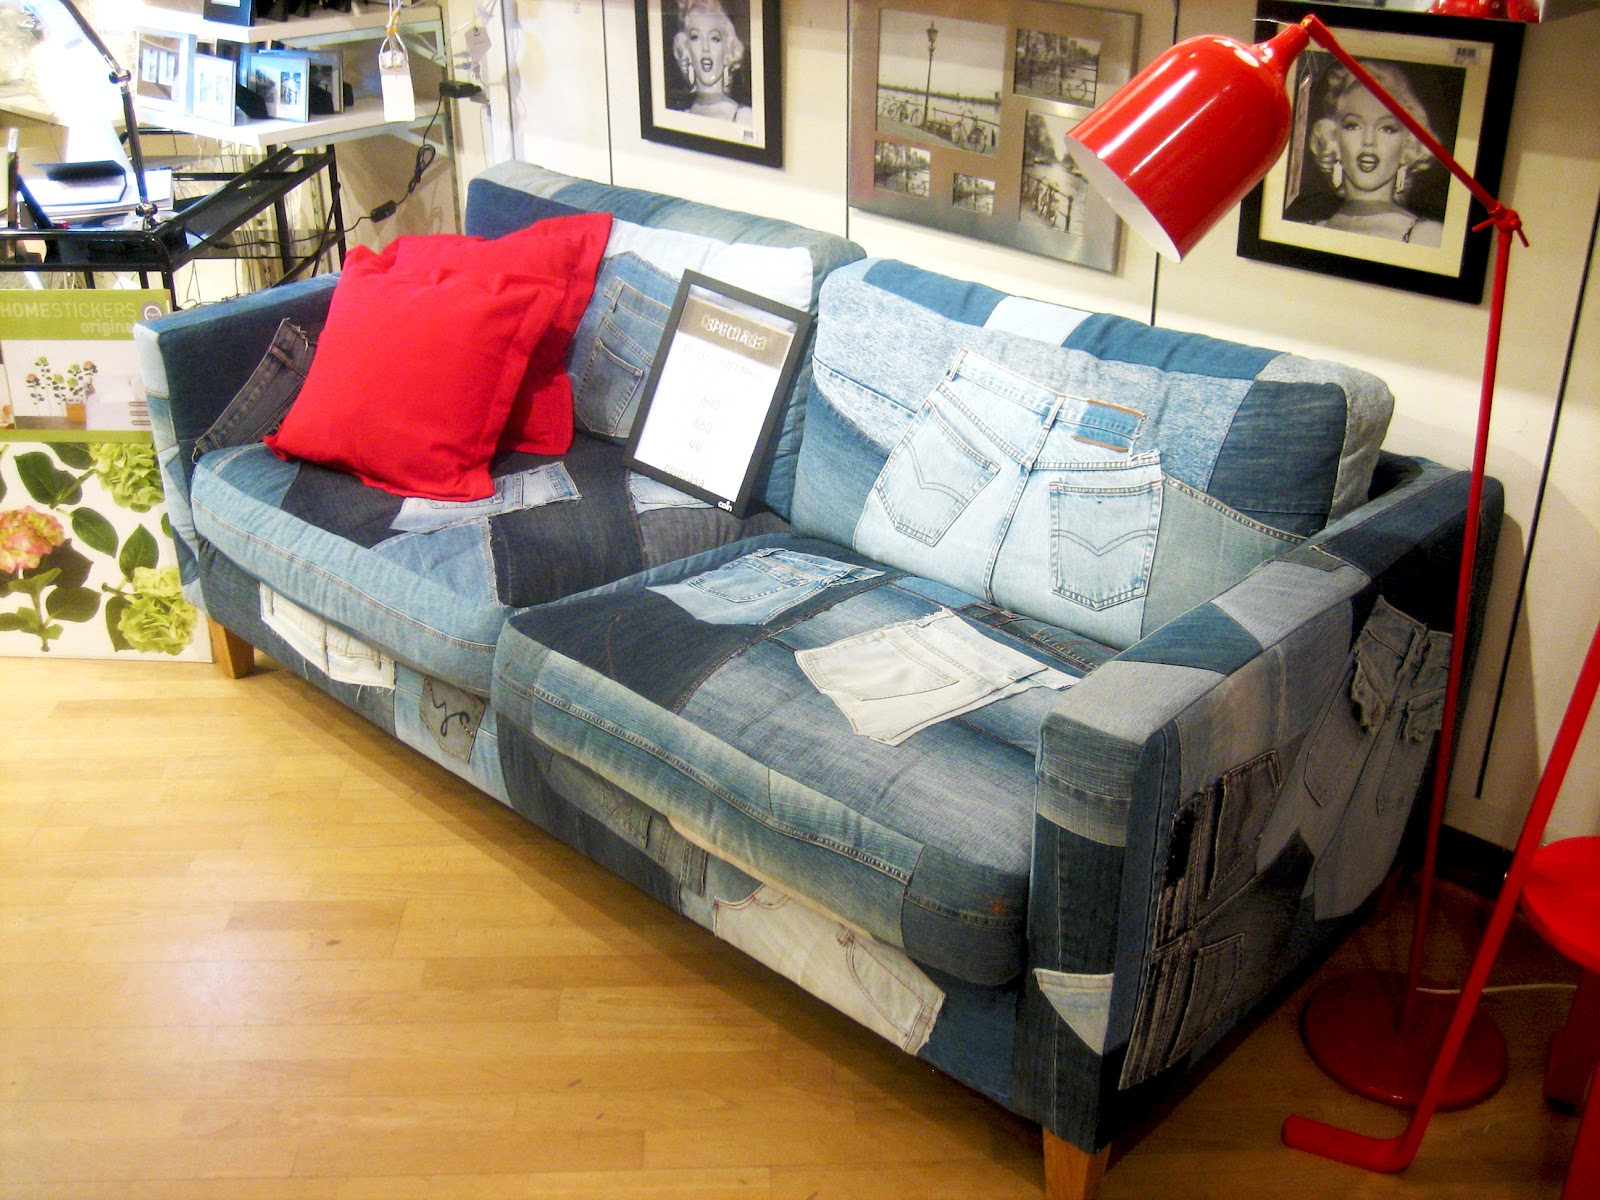 Denim Sofa 7 Sevendays